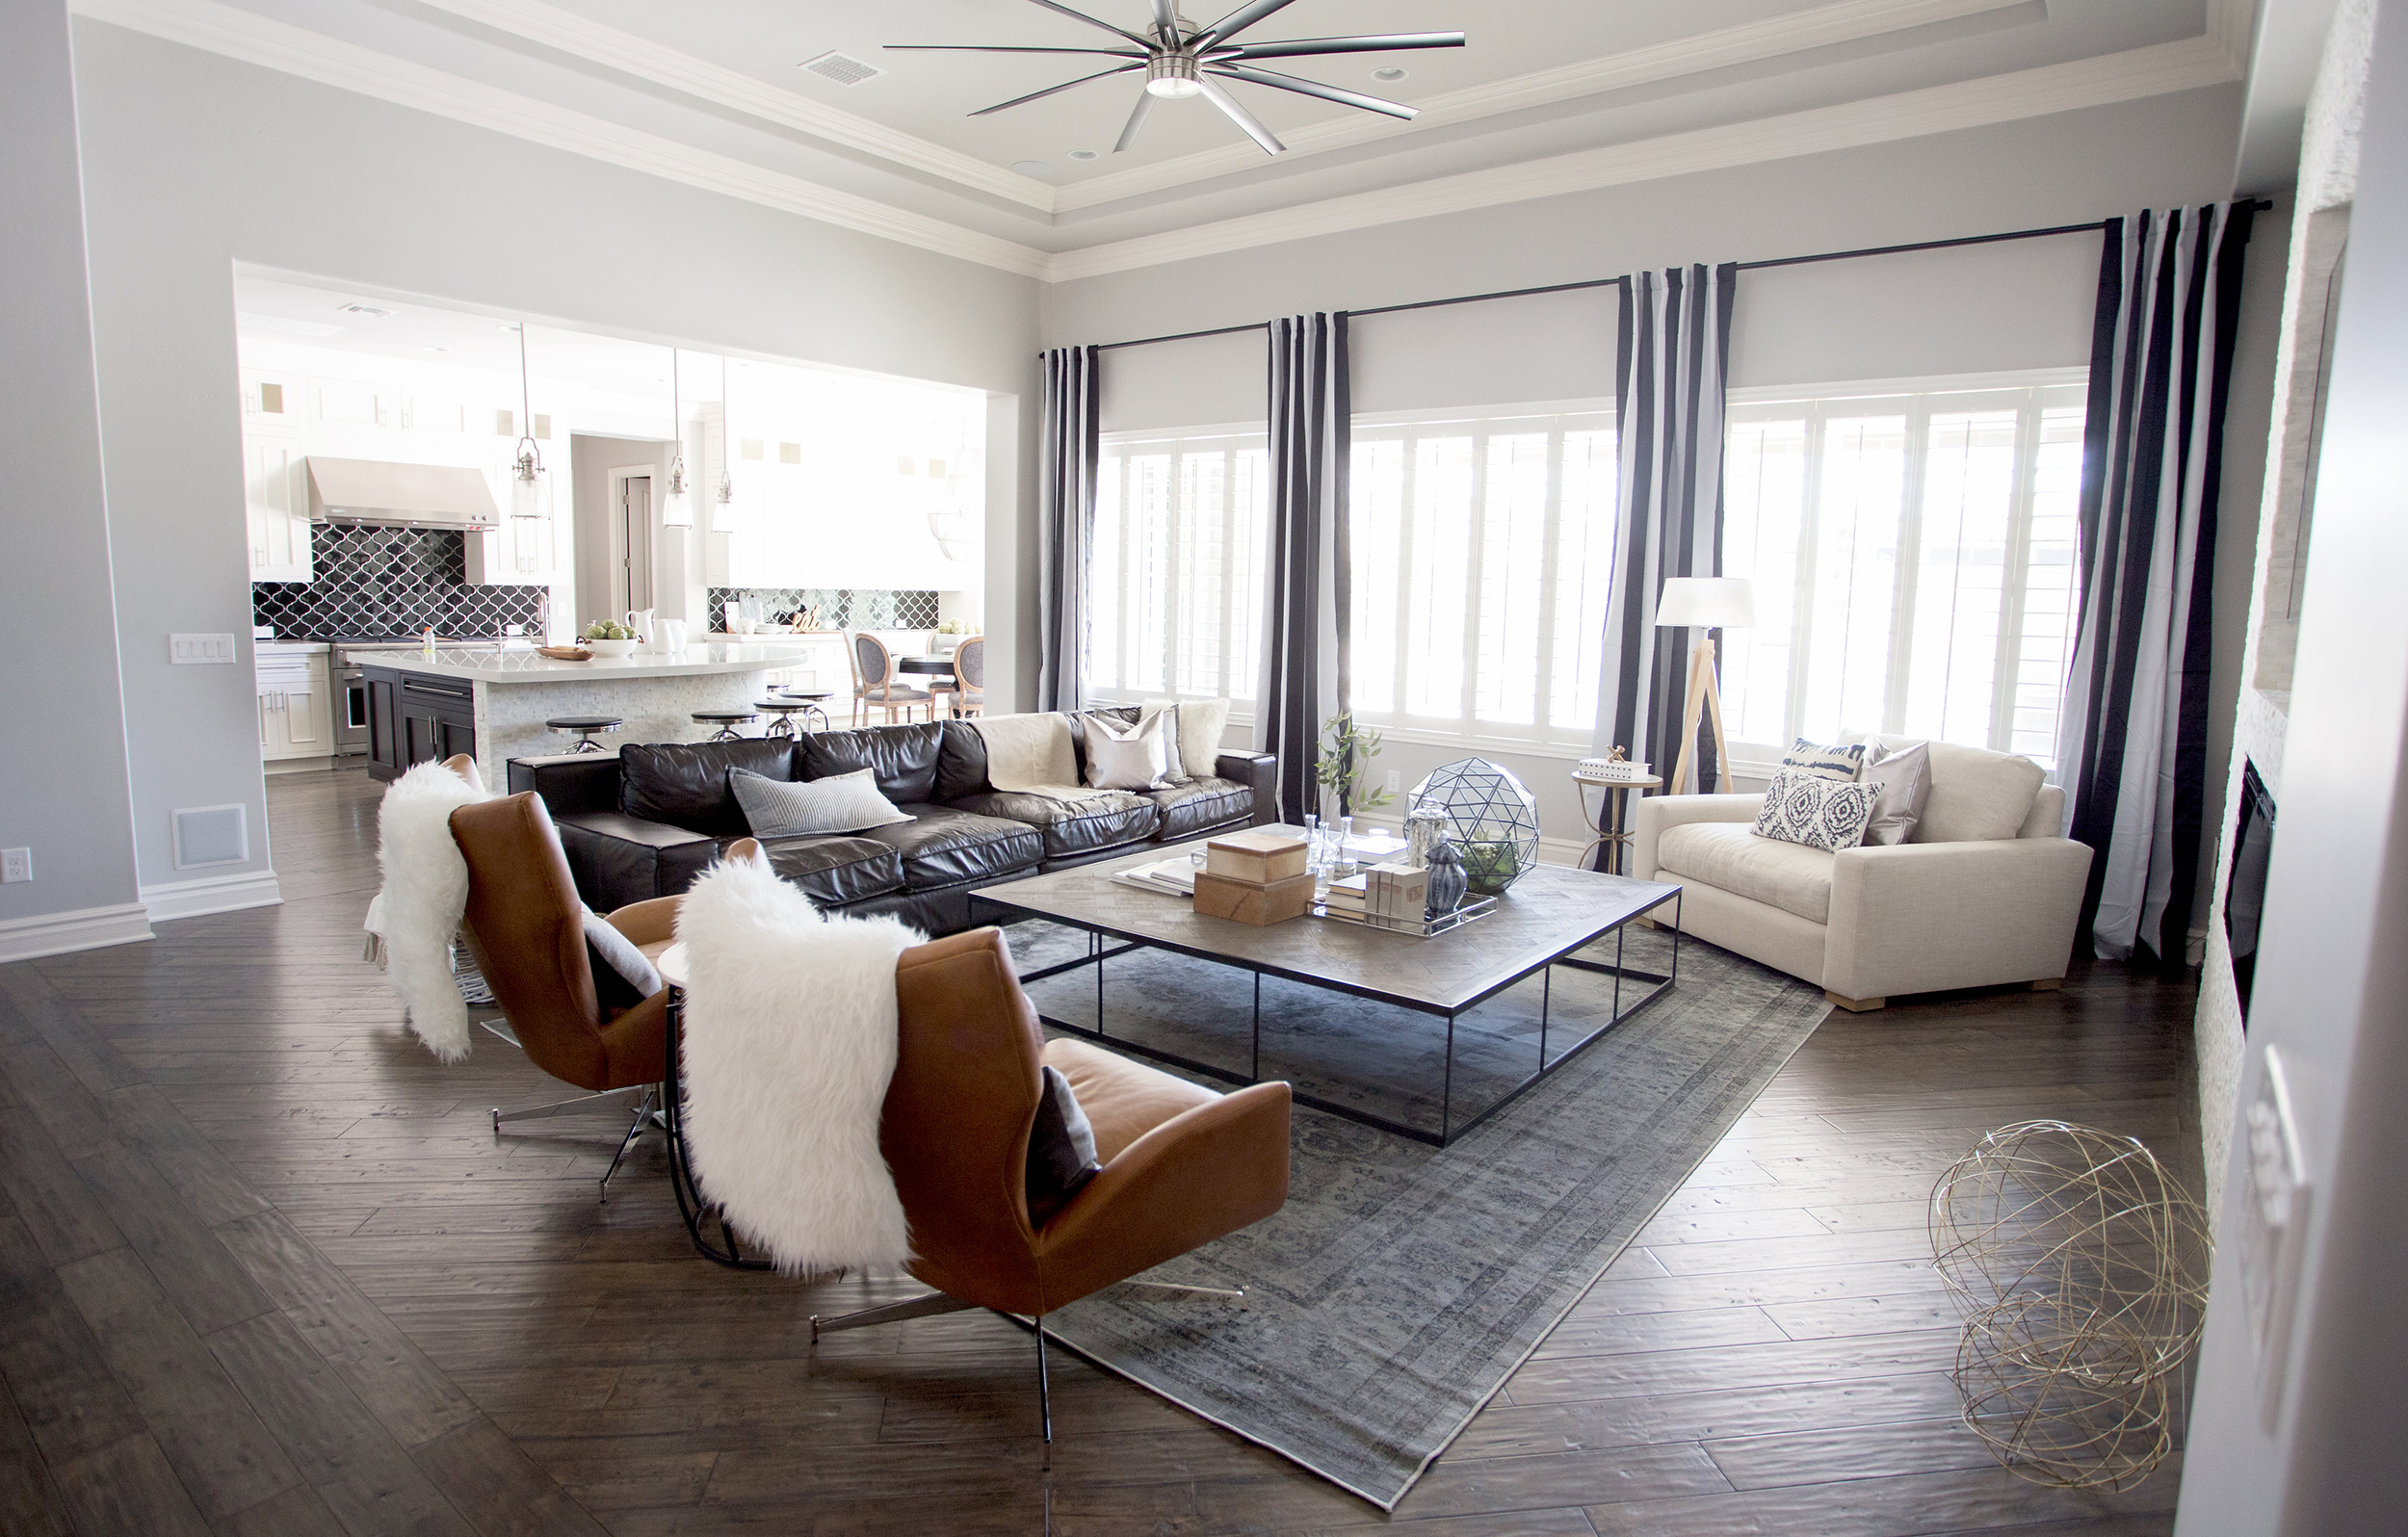 THE LifeStyled COMPANY - Crescent Way Project